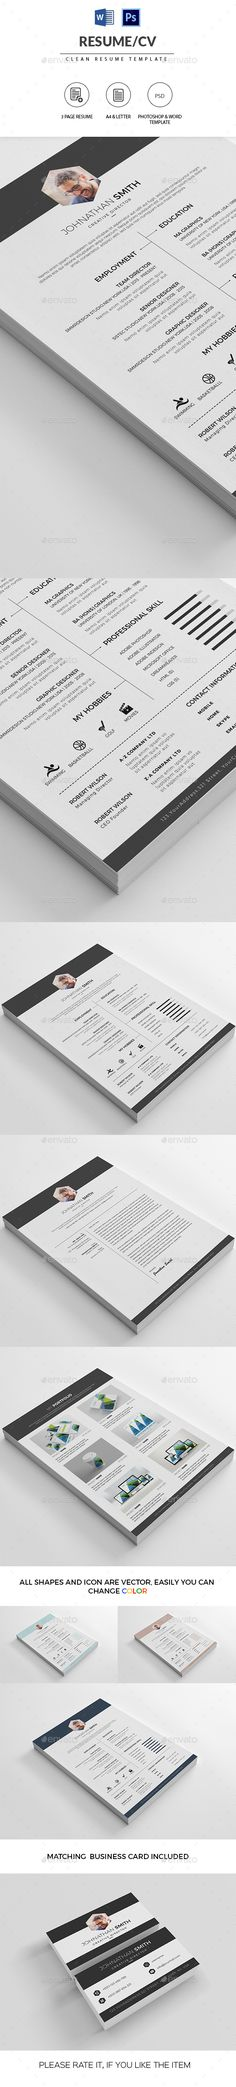 Clean Resume / CV Template PSD #design Download: http://graphicriver.net/item/clean-resumecv/14440266?ref=ksioks